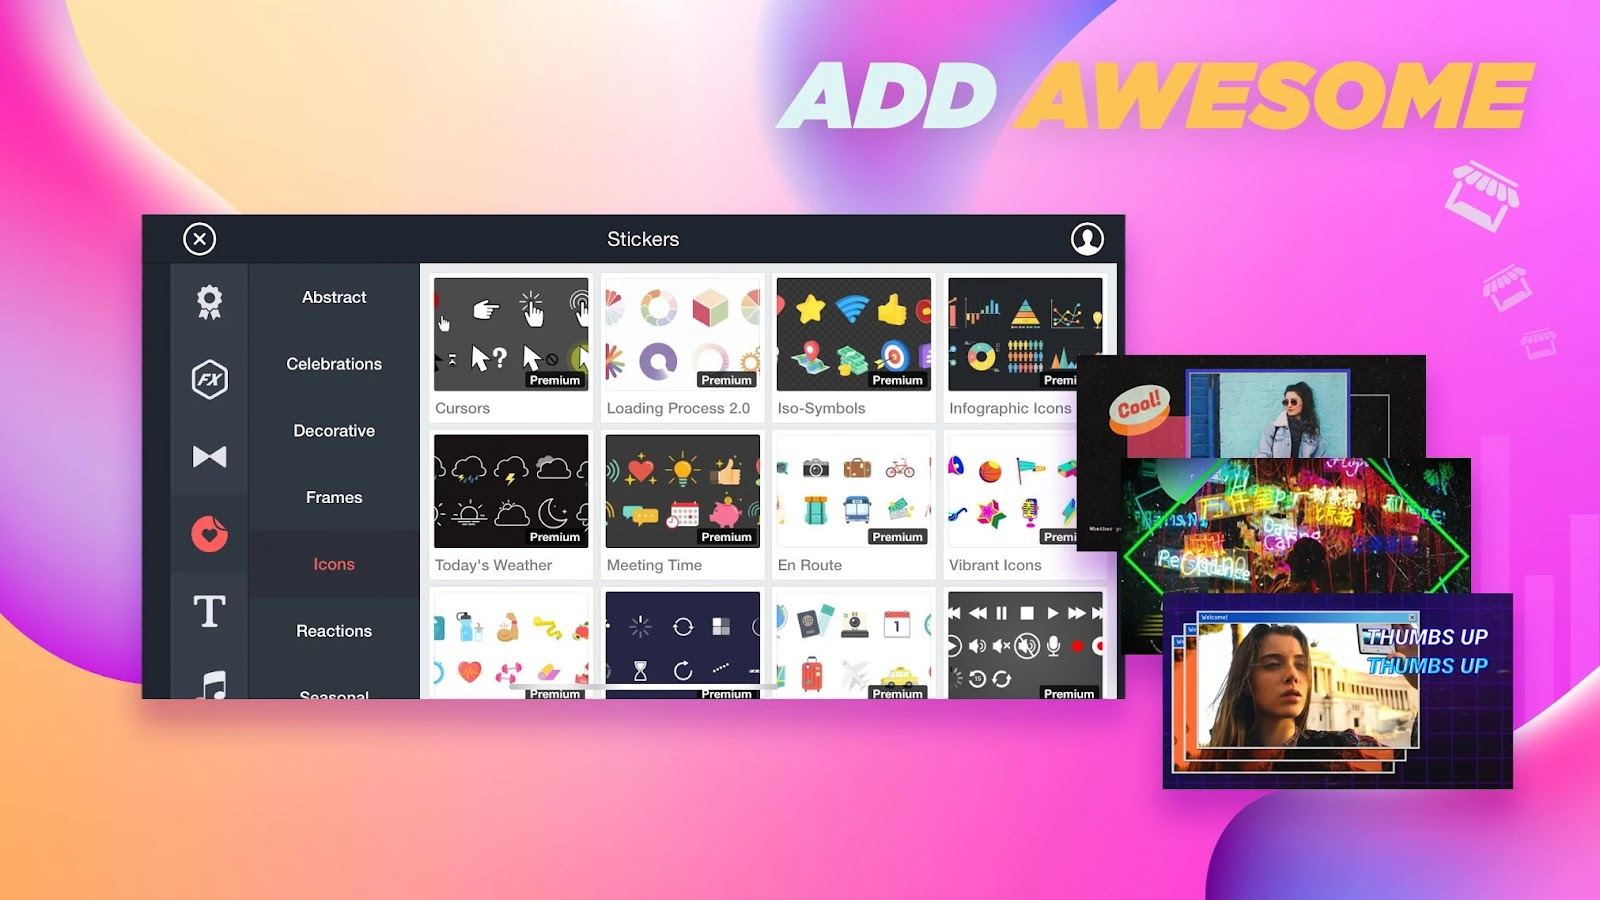 Download the more sticker, animations, sound effects, effects, graphics,  Transitions & more special effects.